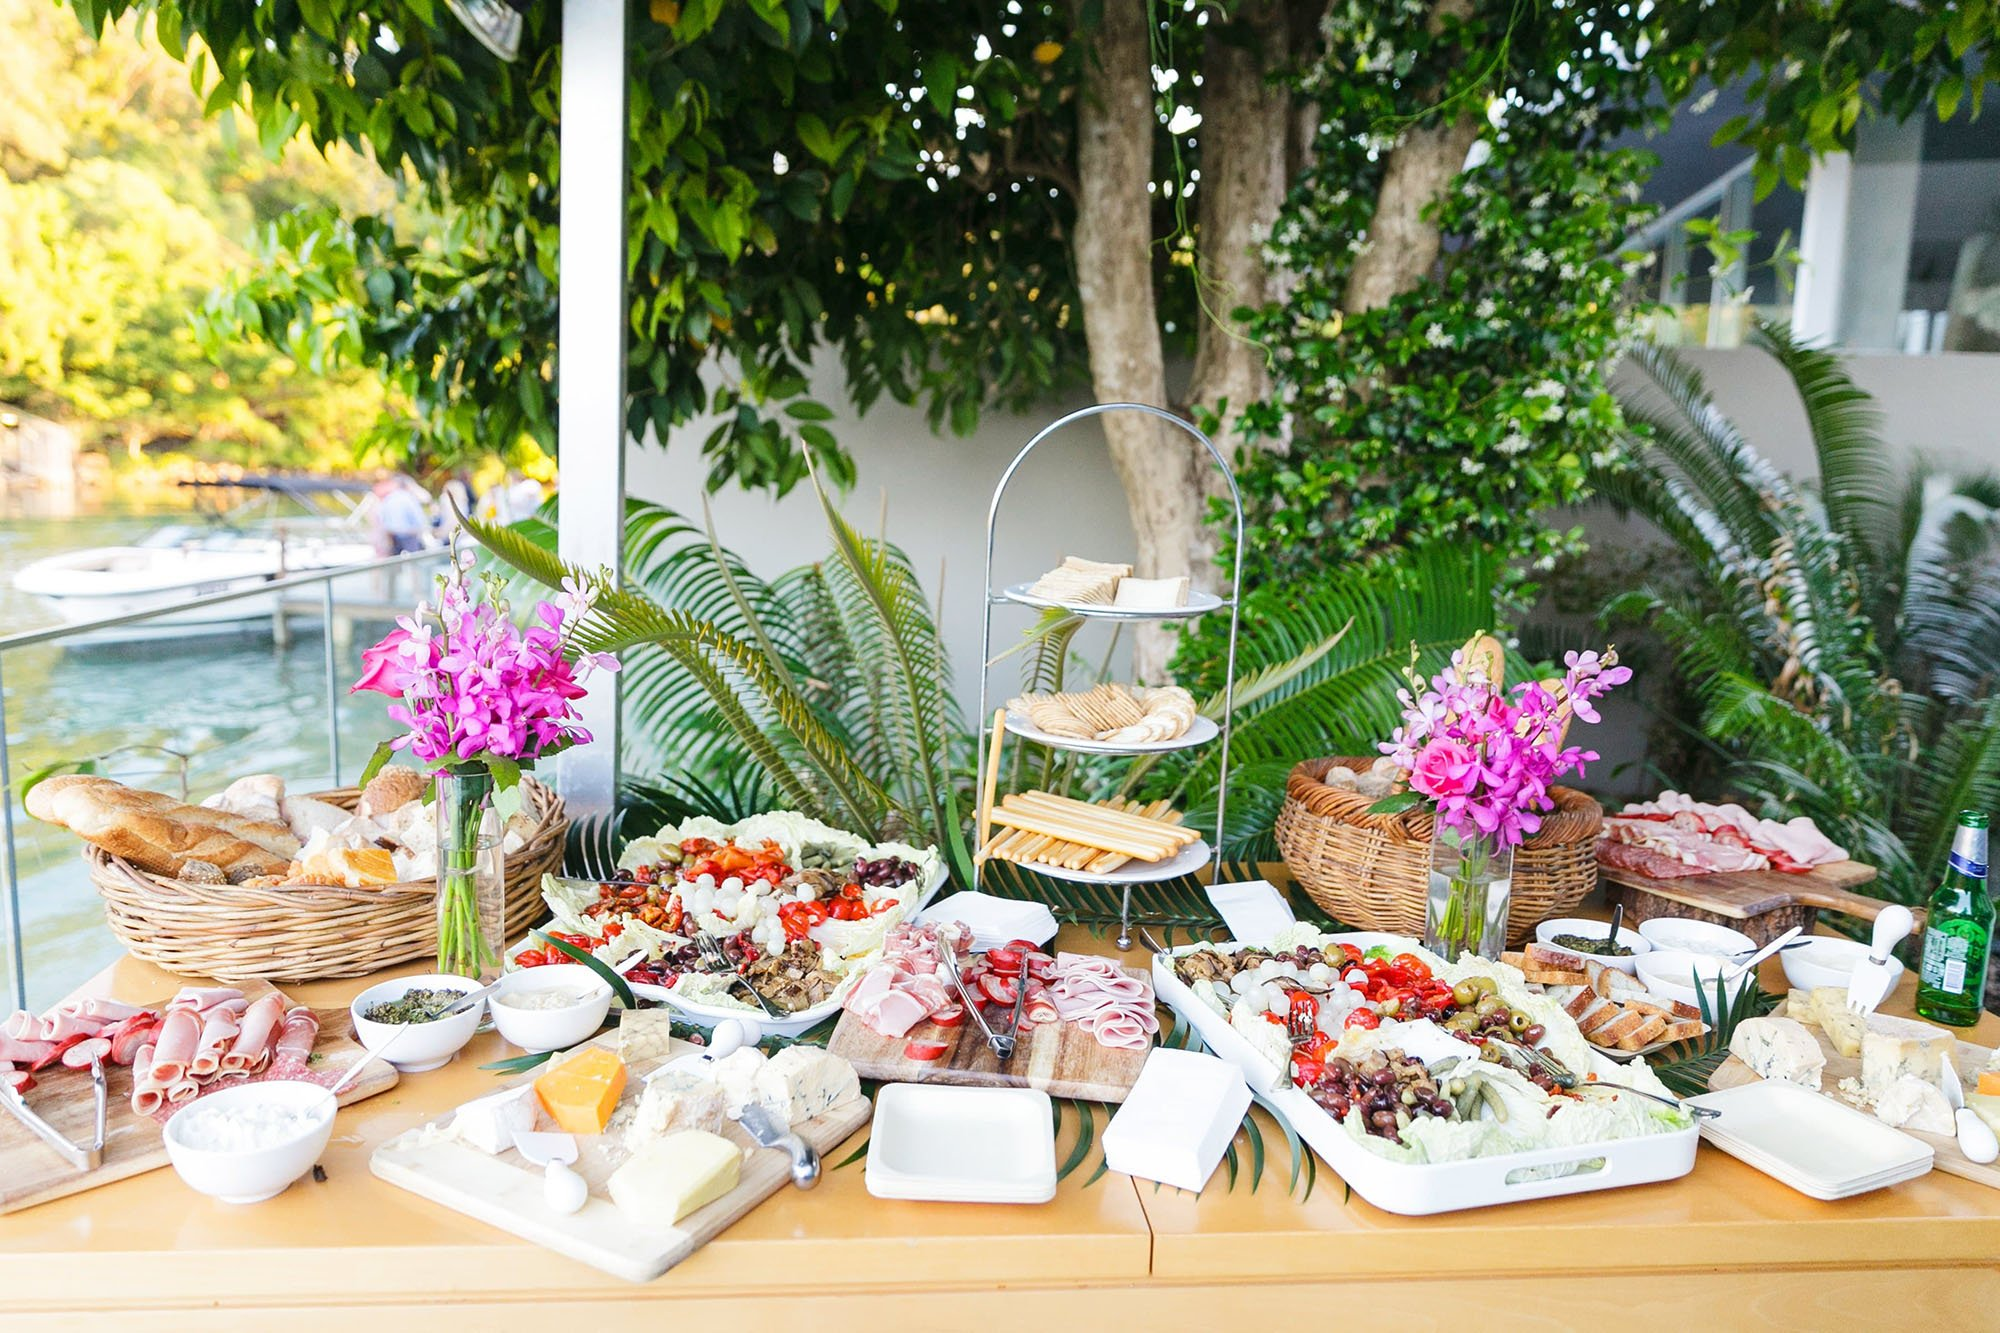 WEDDING AND EVENT FOOD TRENDS 2019